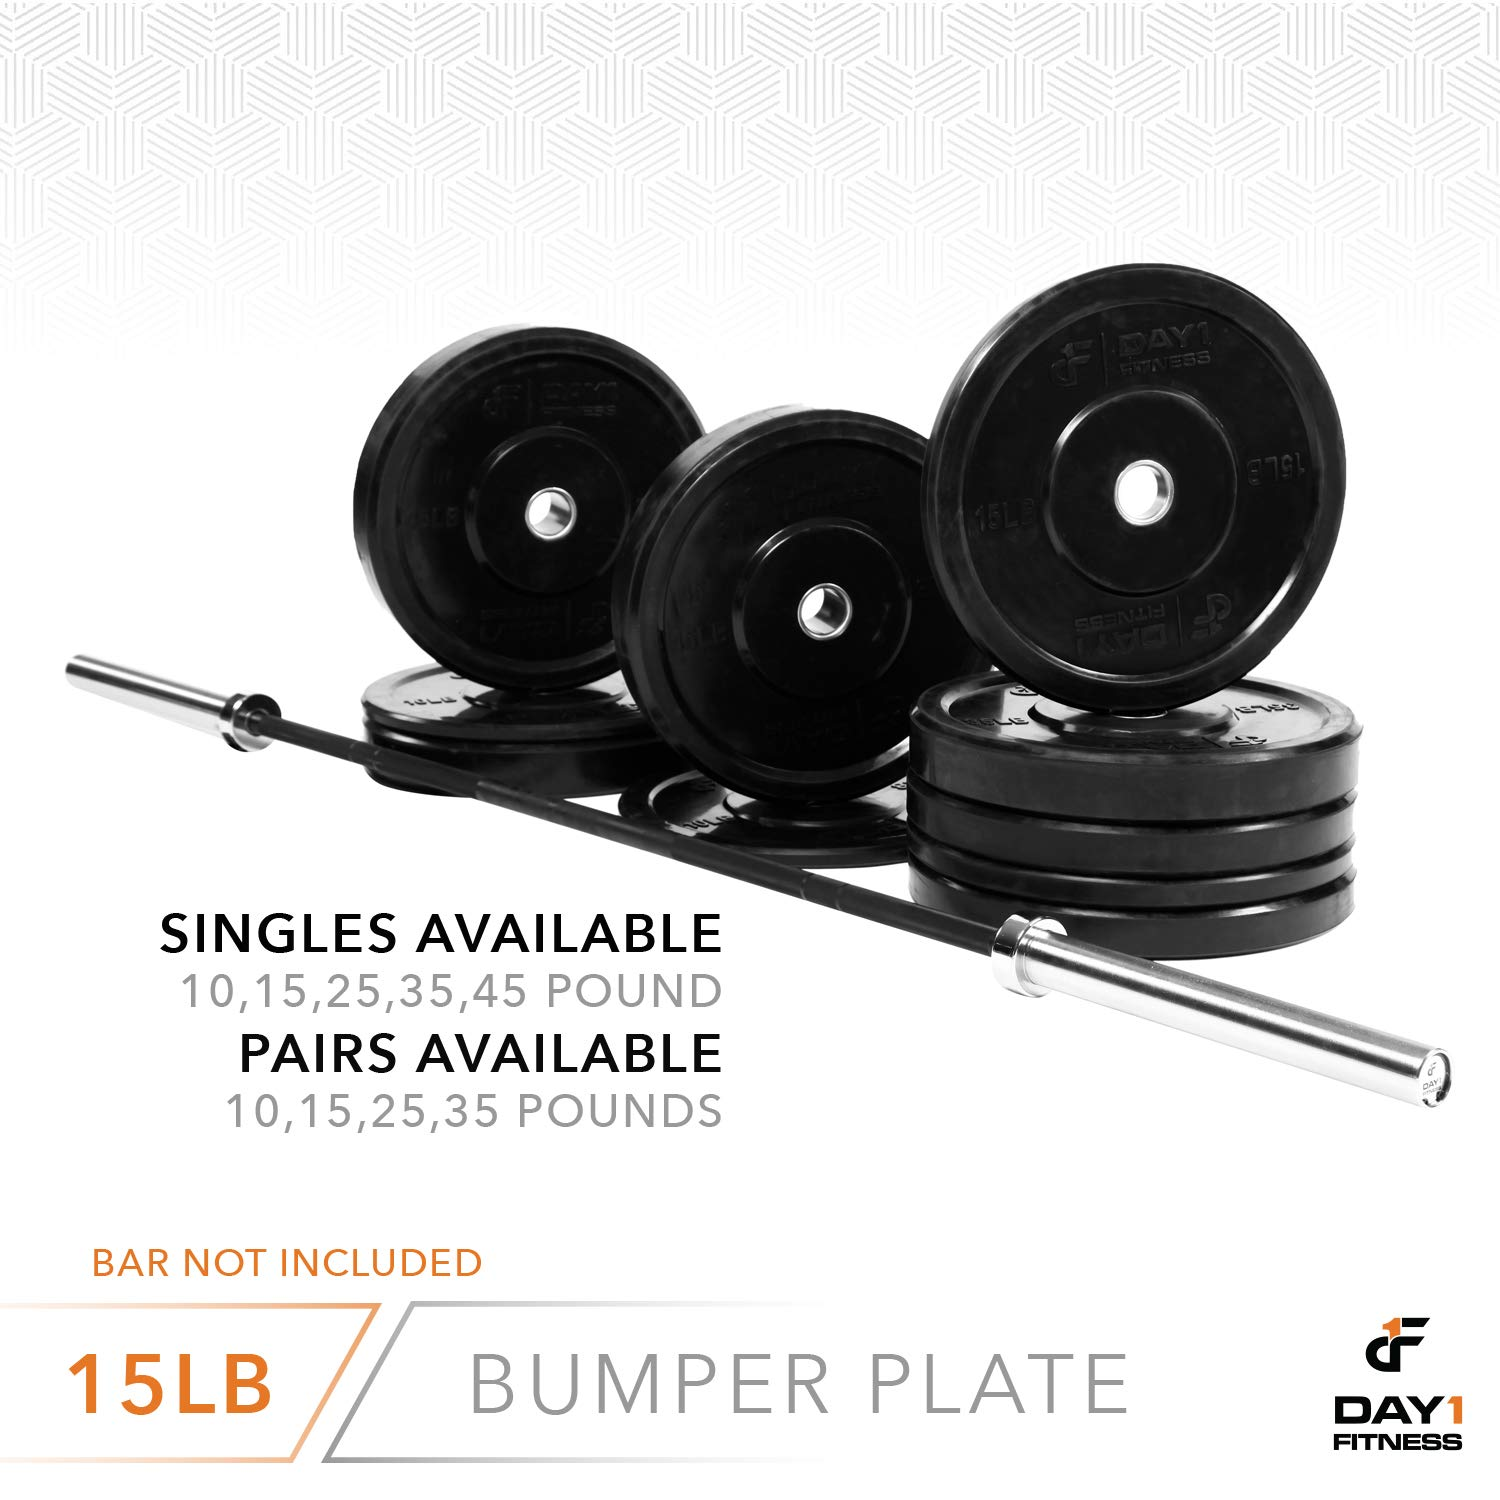 "Day 1 Fitness Olympic Bumper Weighted Plate 2"" for Barbells, Bars – 15 lb Single Plate - Shock-Absorbing, Minimal Bounce Steel Weights with Bumpers for Lifting, Strength Training, and Working Out by Day 1 Fitness (Image #6)"